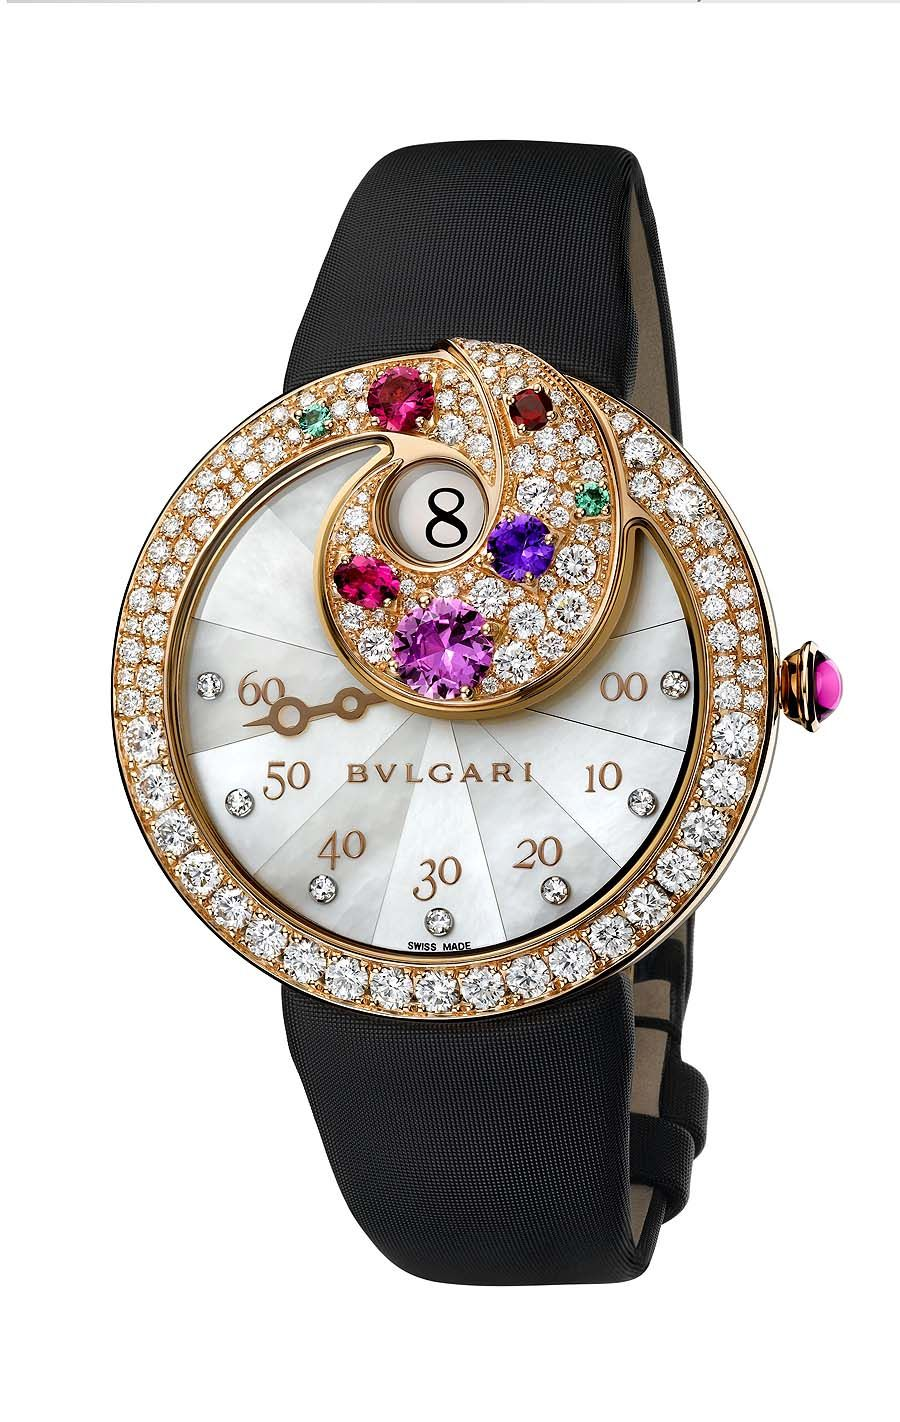 Bulgari Jumping Hour Retrograde Minutes jewellery watch, shortlisted for the Jewellery Watch award.